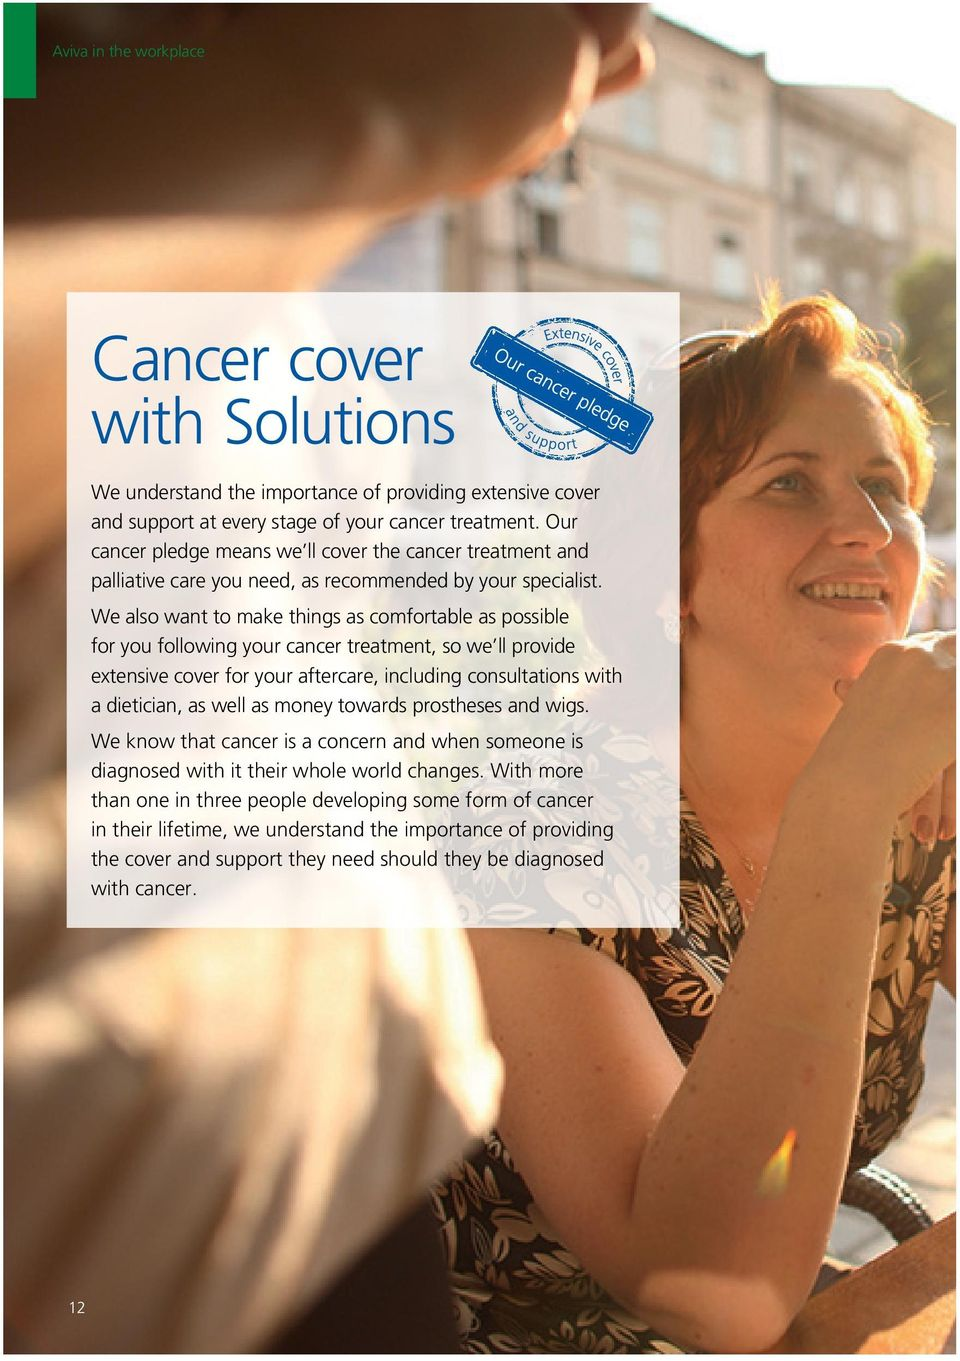 We also want to make things as comfortable as possible for you following your cancer treatment, so we ll provide extensive cover for your aftercare, including consultations with a dietician, as well